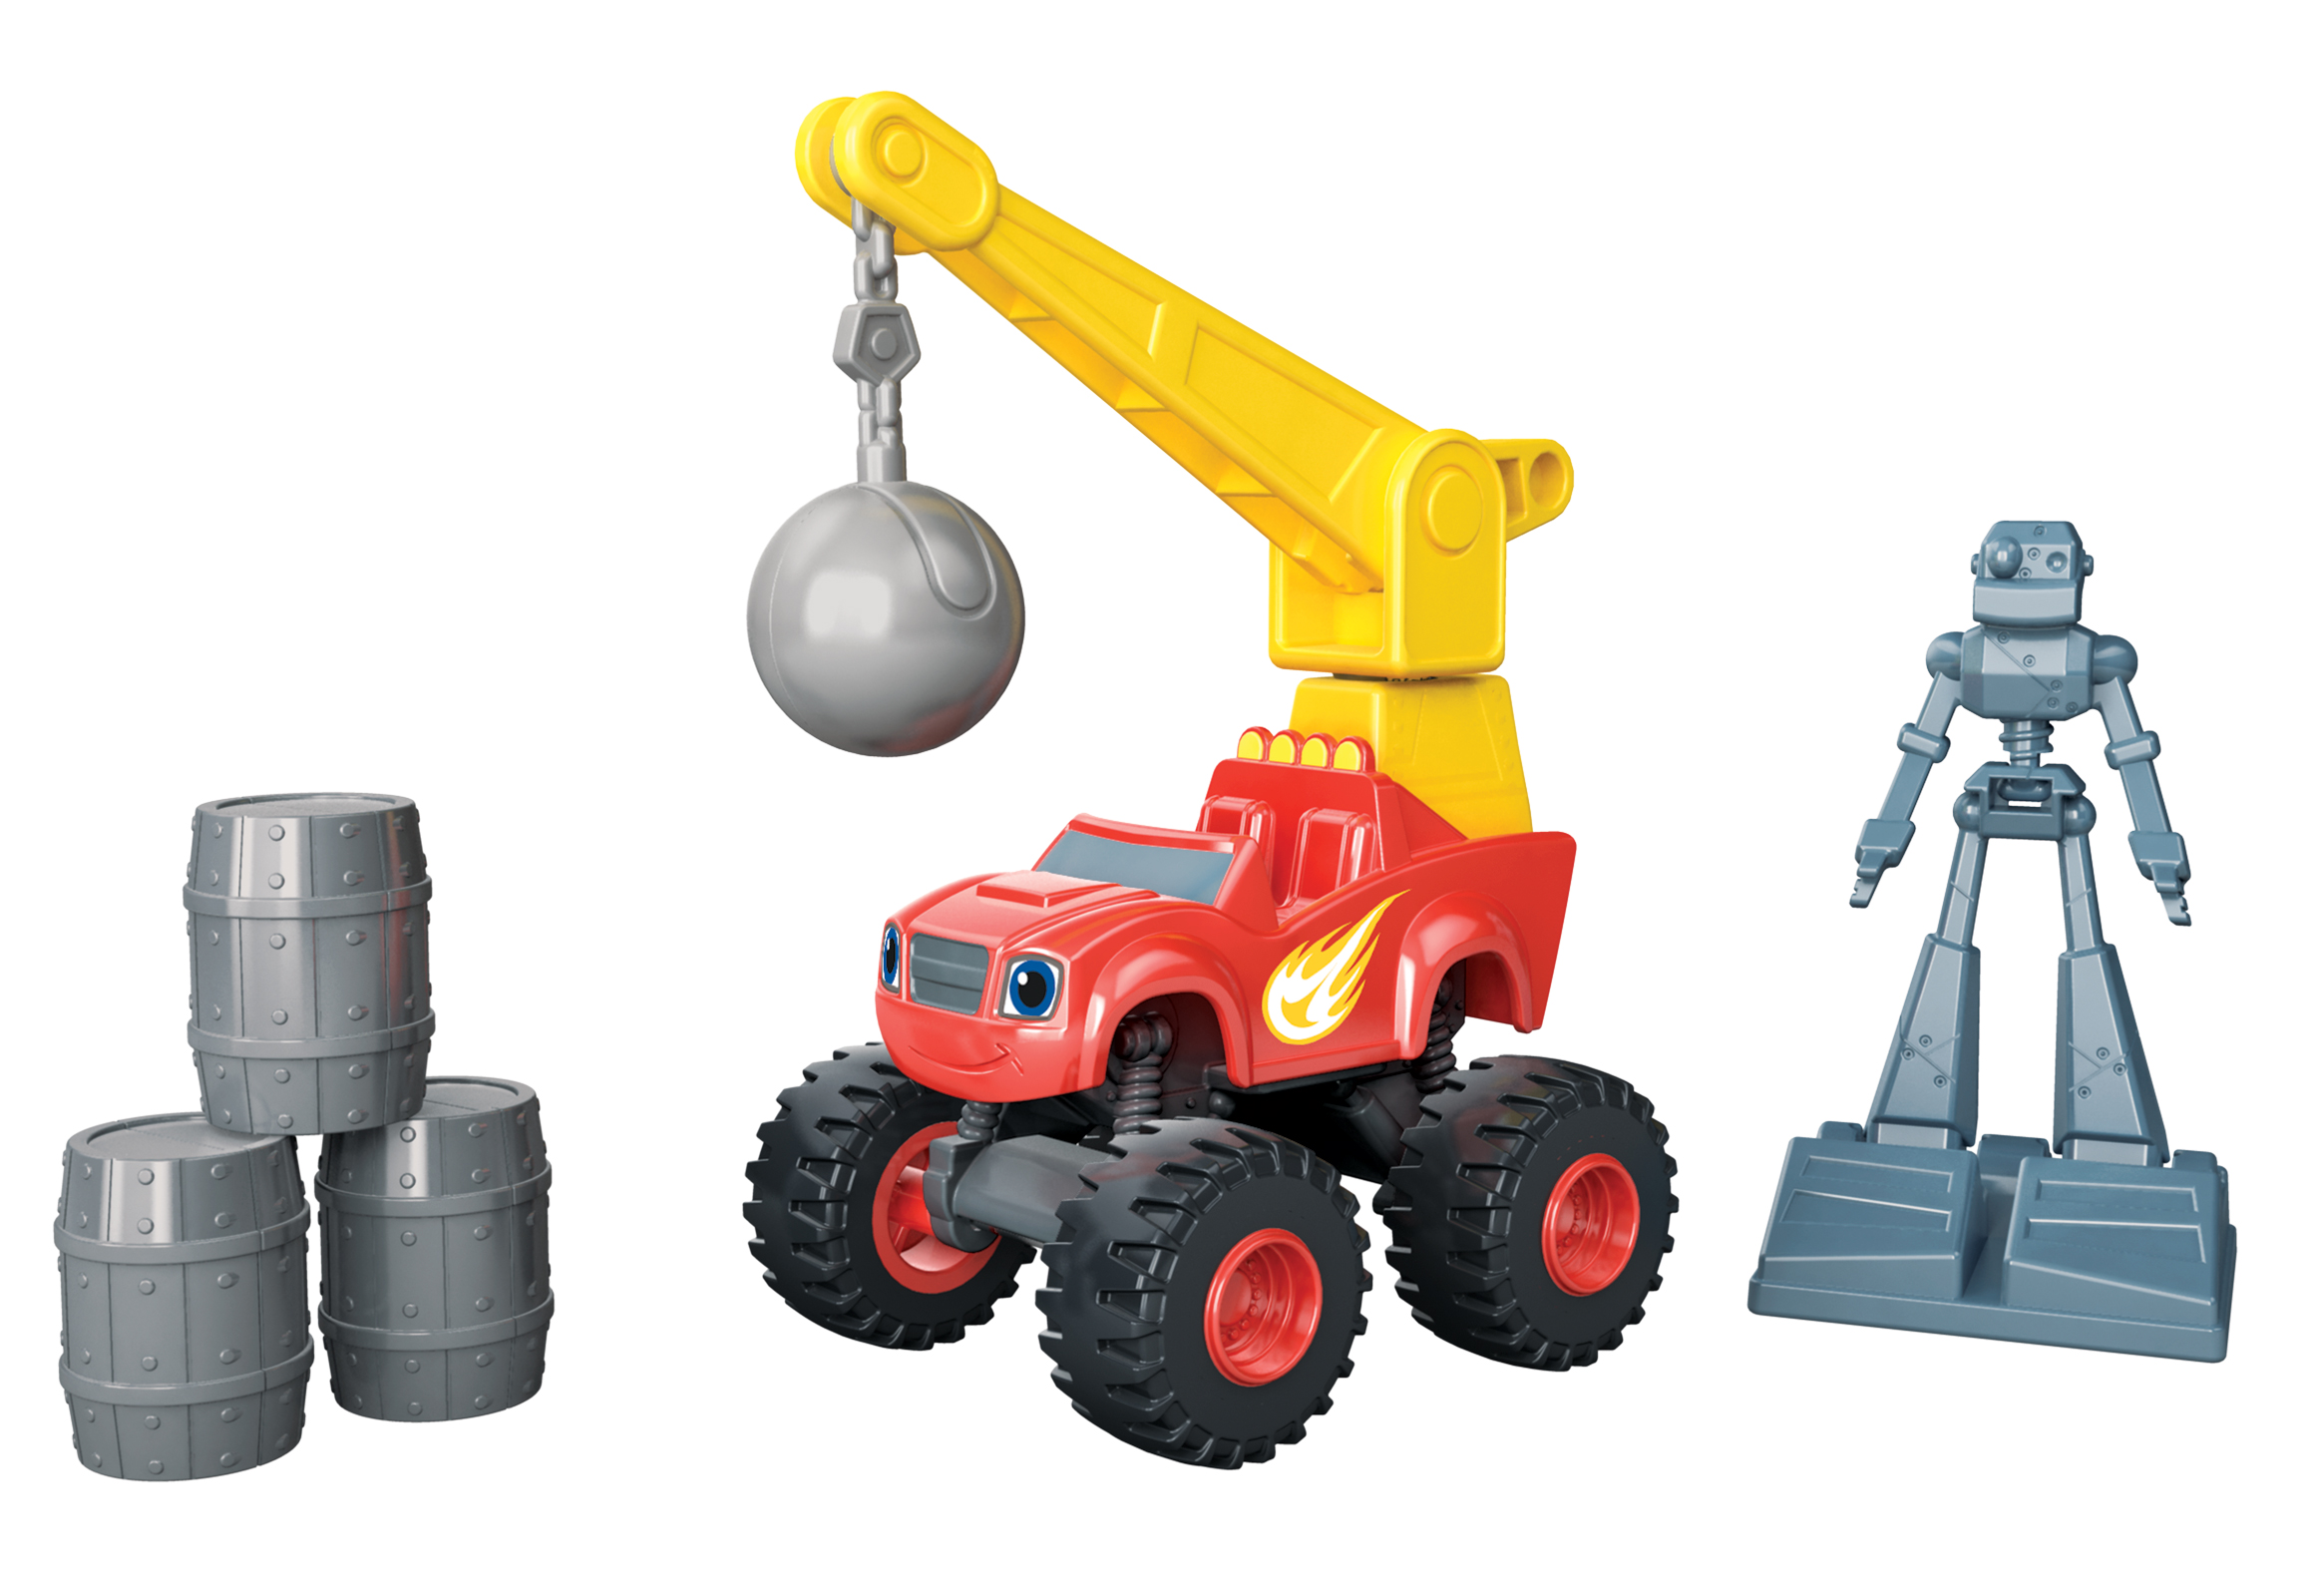 Nickelodeon Blaze And The Monster Machines Wrecking Crane